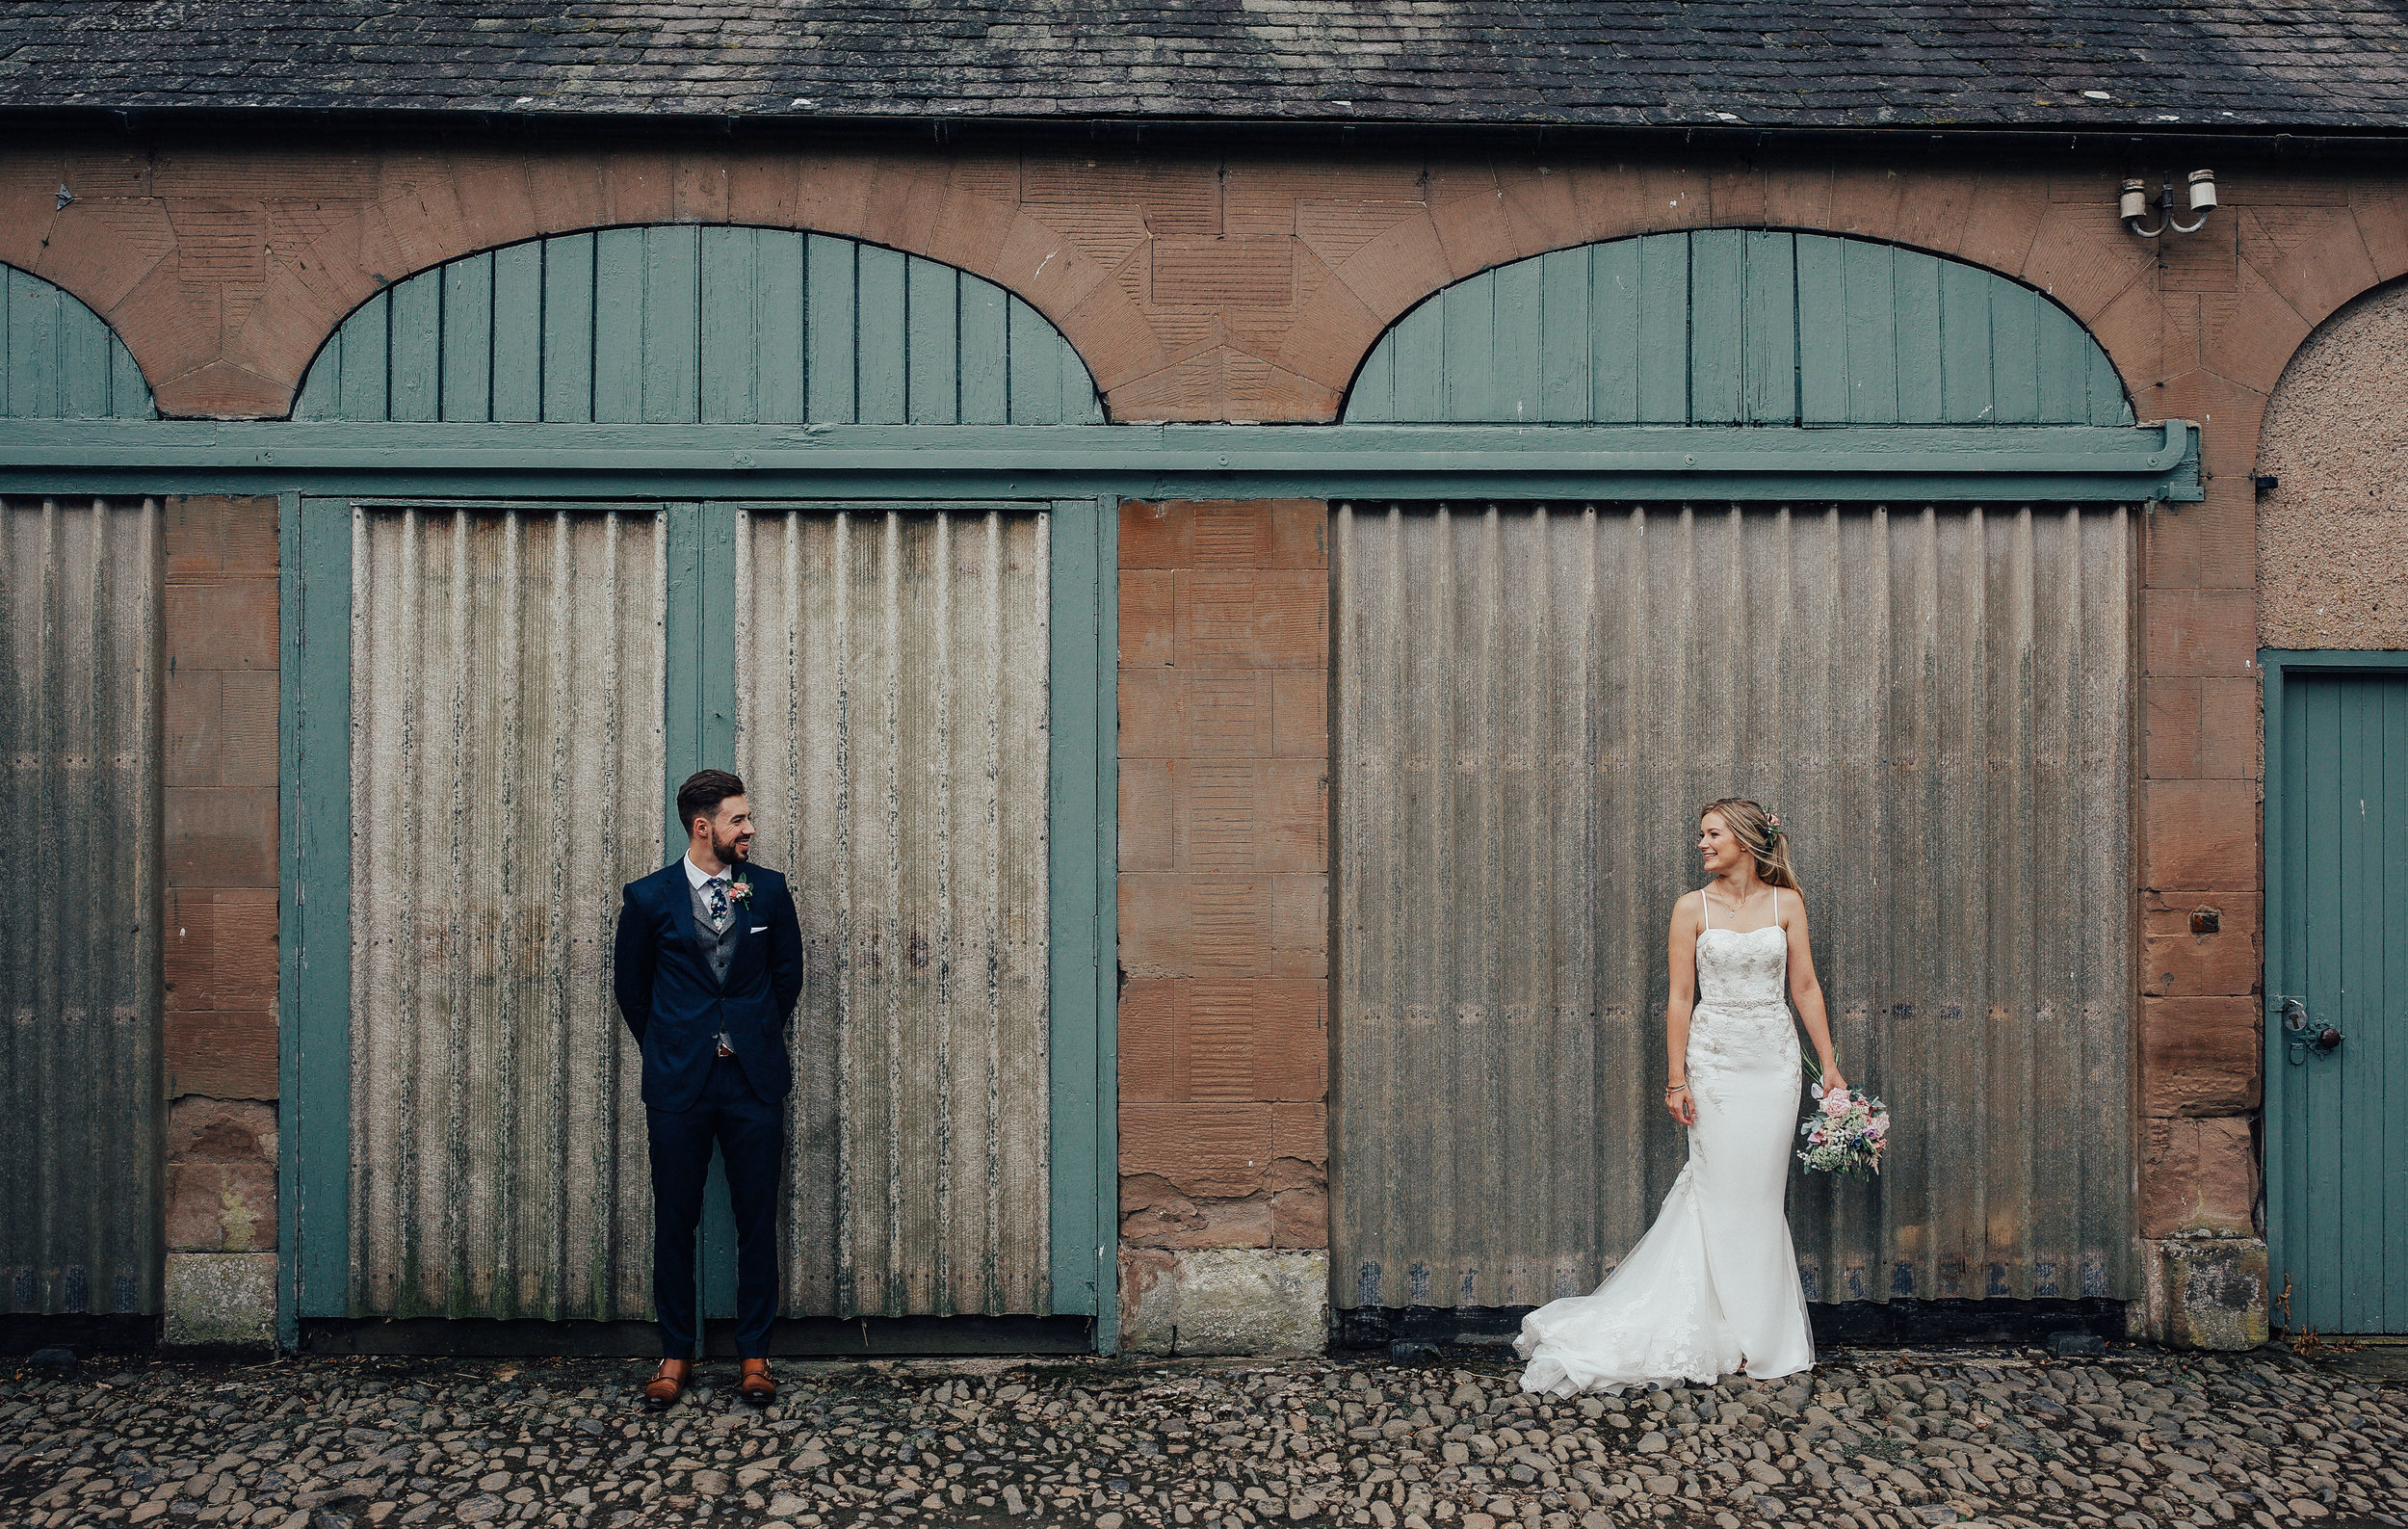 PJ_PHILLIPS_PHOTOGRAPHY_EDINBURGH_WEDDERBURN_BARNS_WEDDING_EDINBURGH_WEDDING_PHOTOGRAPHER_89.jpg